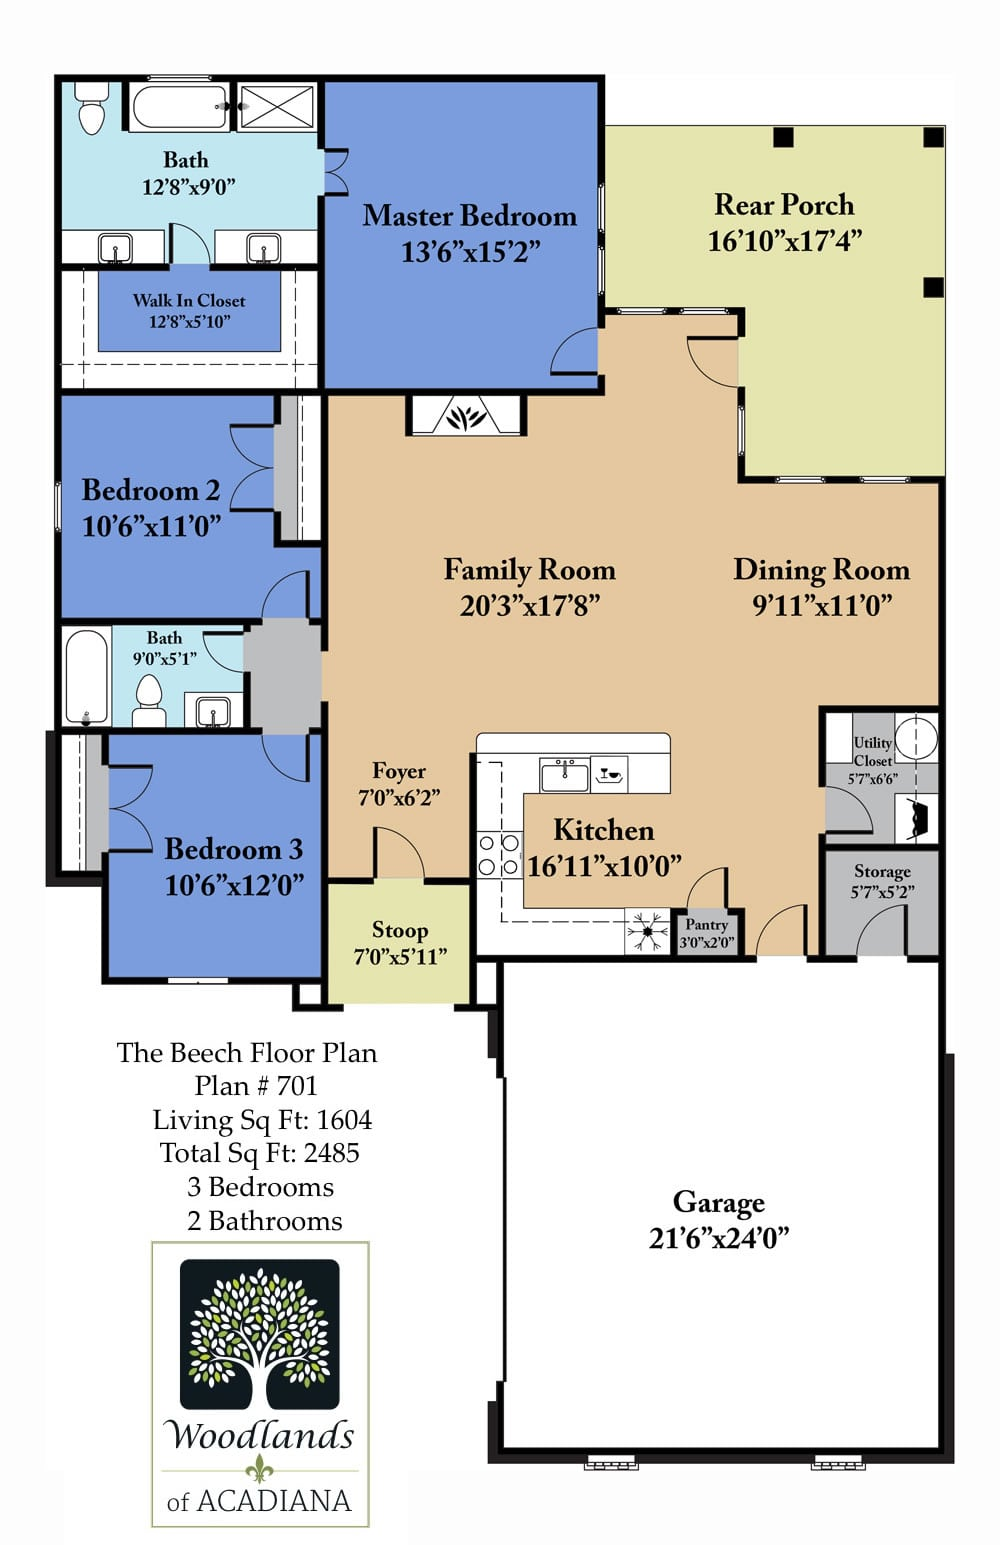 Beech Floor Plan